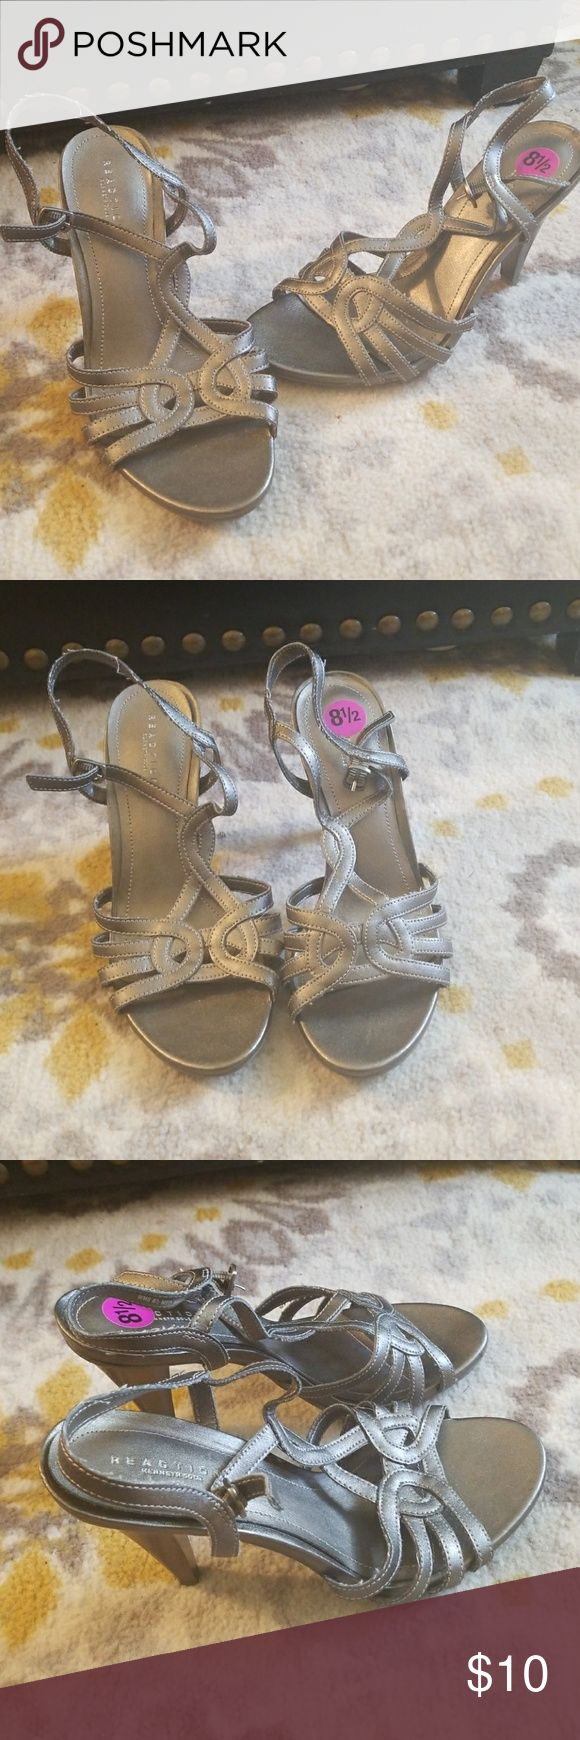 """Kenneth Cole Reaction Grey/Silver Open Toe Heels Kenneth Cole Reaction Grey/ Silver Strappy Open Toe Heels. Has a little sparkle to them. Style: Glow Know. Buckle closure. Good used condition with some minor wear or strings on straps, can be cut. Only worn a couple of times. Size 8.5. Heel height 3.75"""". Kenneth Cole Reaction Shoes Heels"""